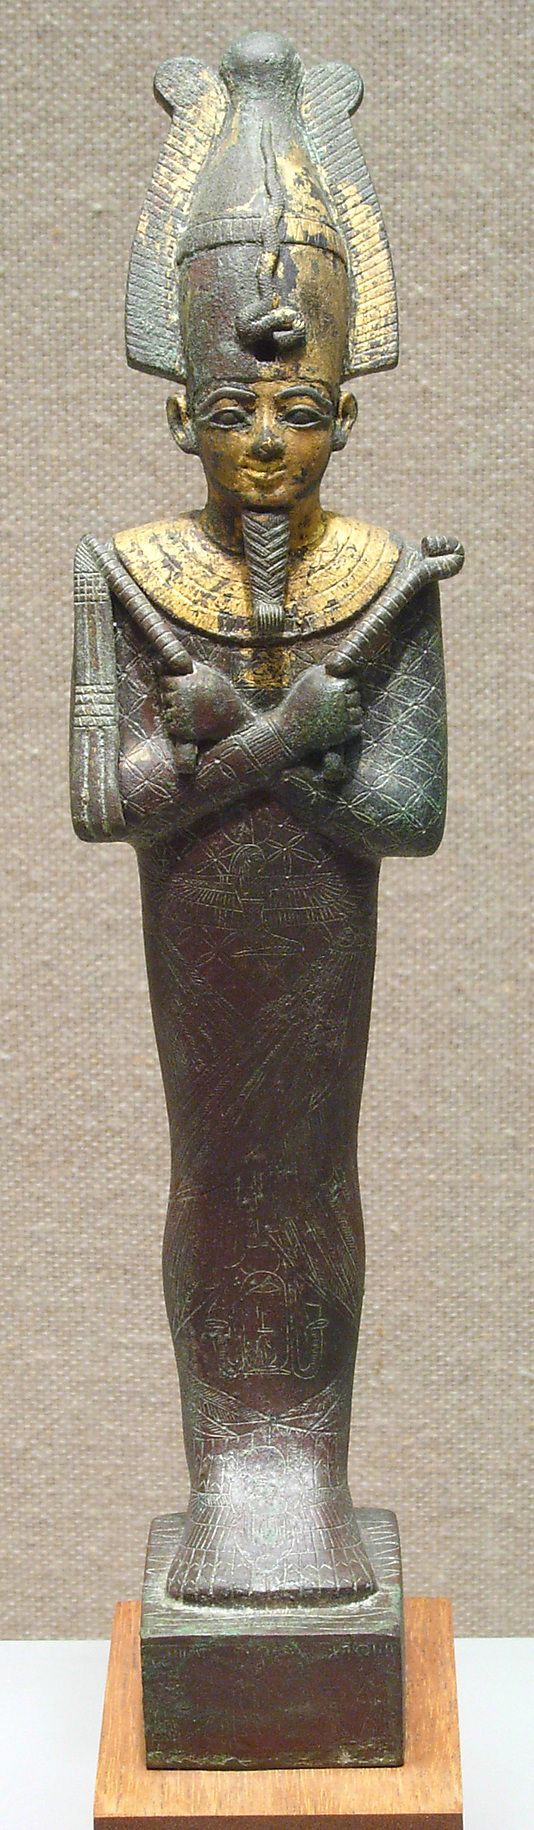 Statuette of Osiris with the name of Padihorpere.  Late Period Dynasty: Dynasty 25–26 , ca. 712–525 B.C. Egypt. Bronze or copper alloy  MET no. 56.16.2